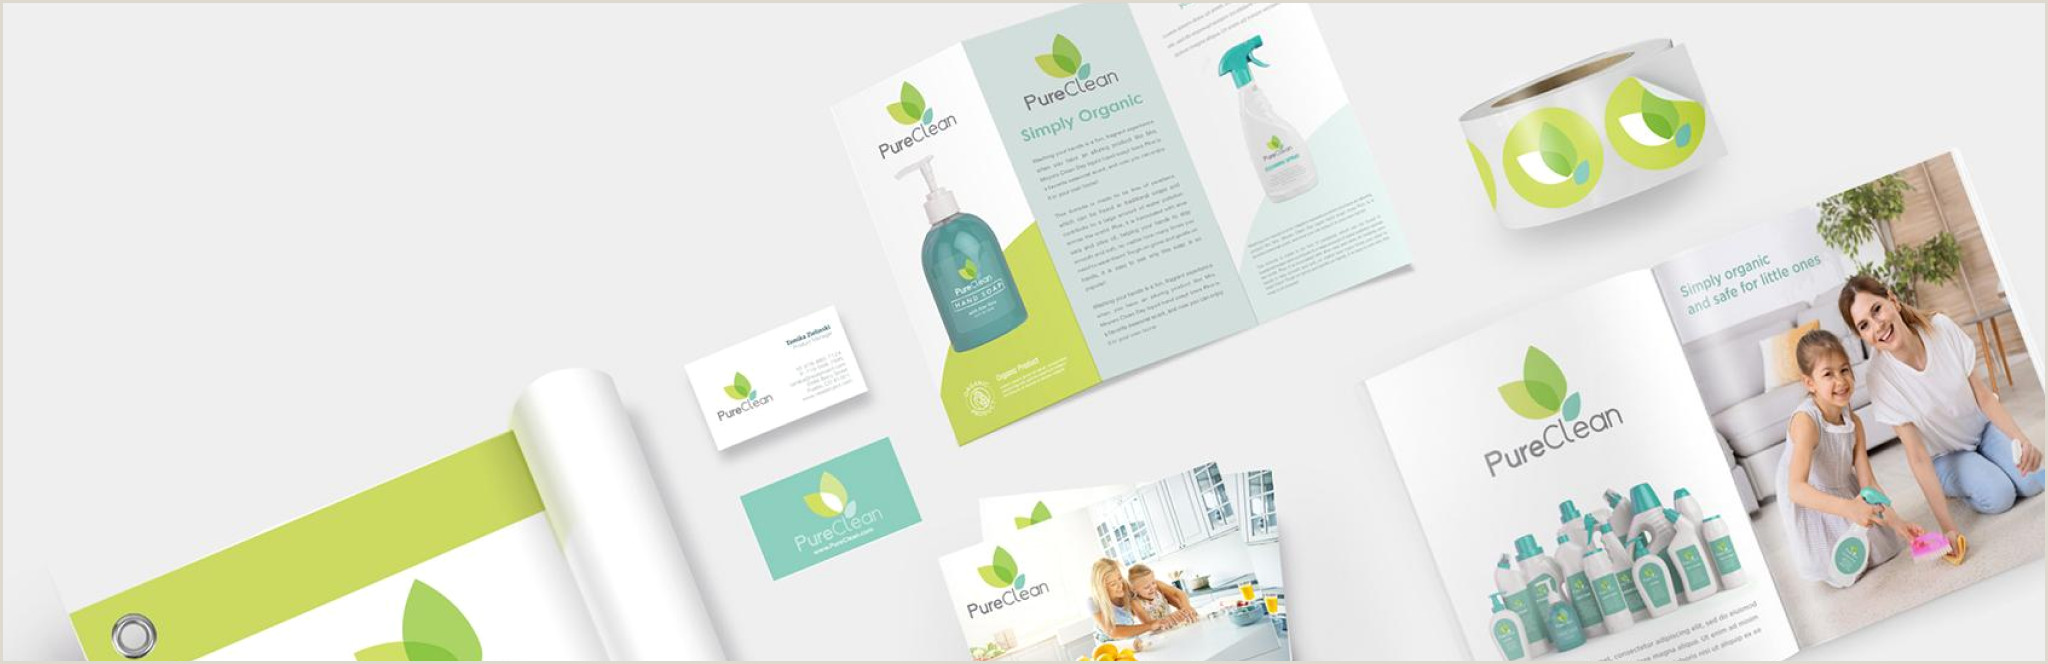 Business Card Design Company Printplace High Quality Line Printing Services